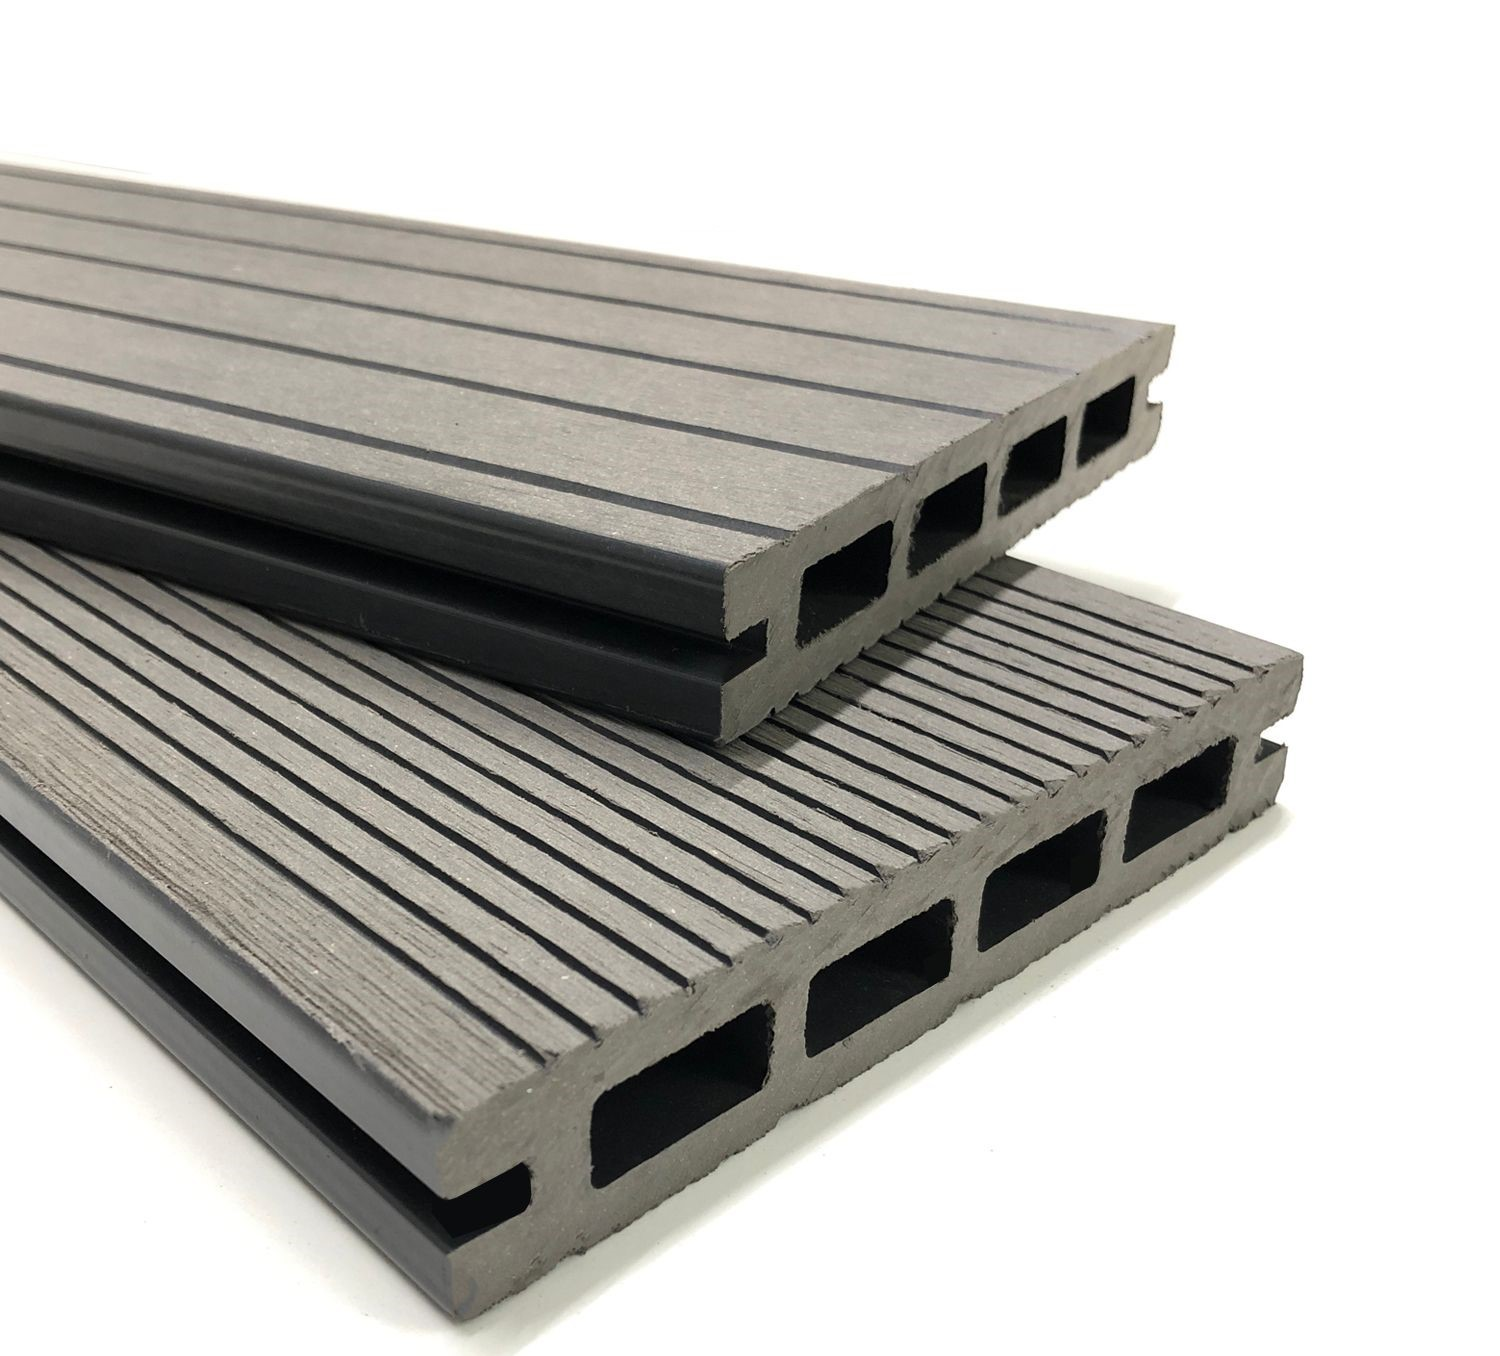 Luxury Composite Wood Decking Boards